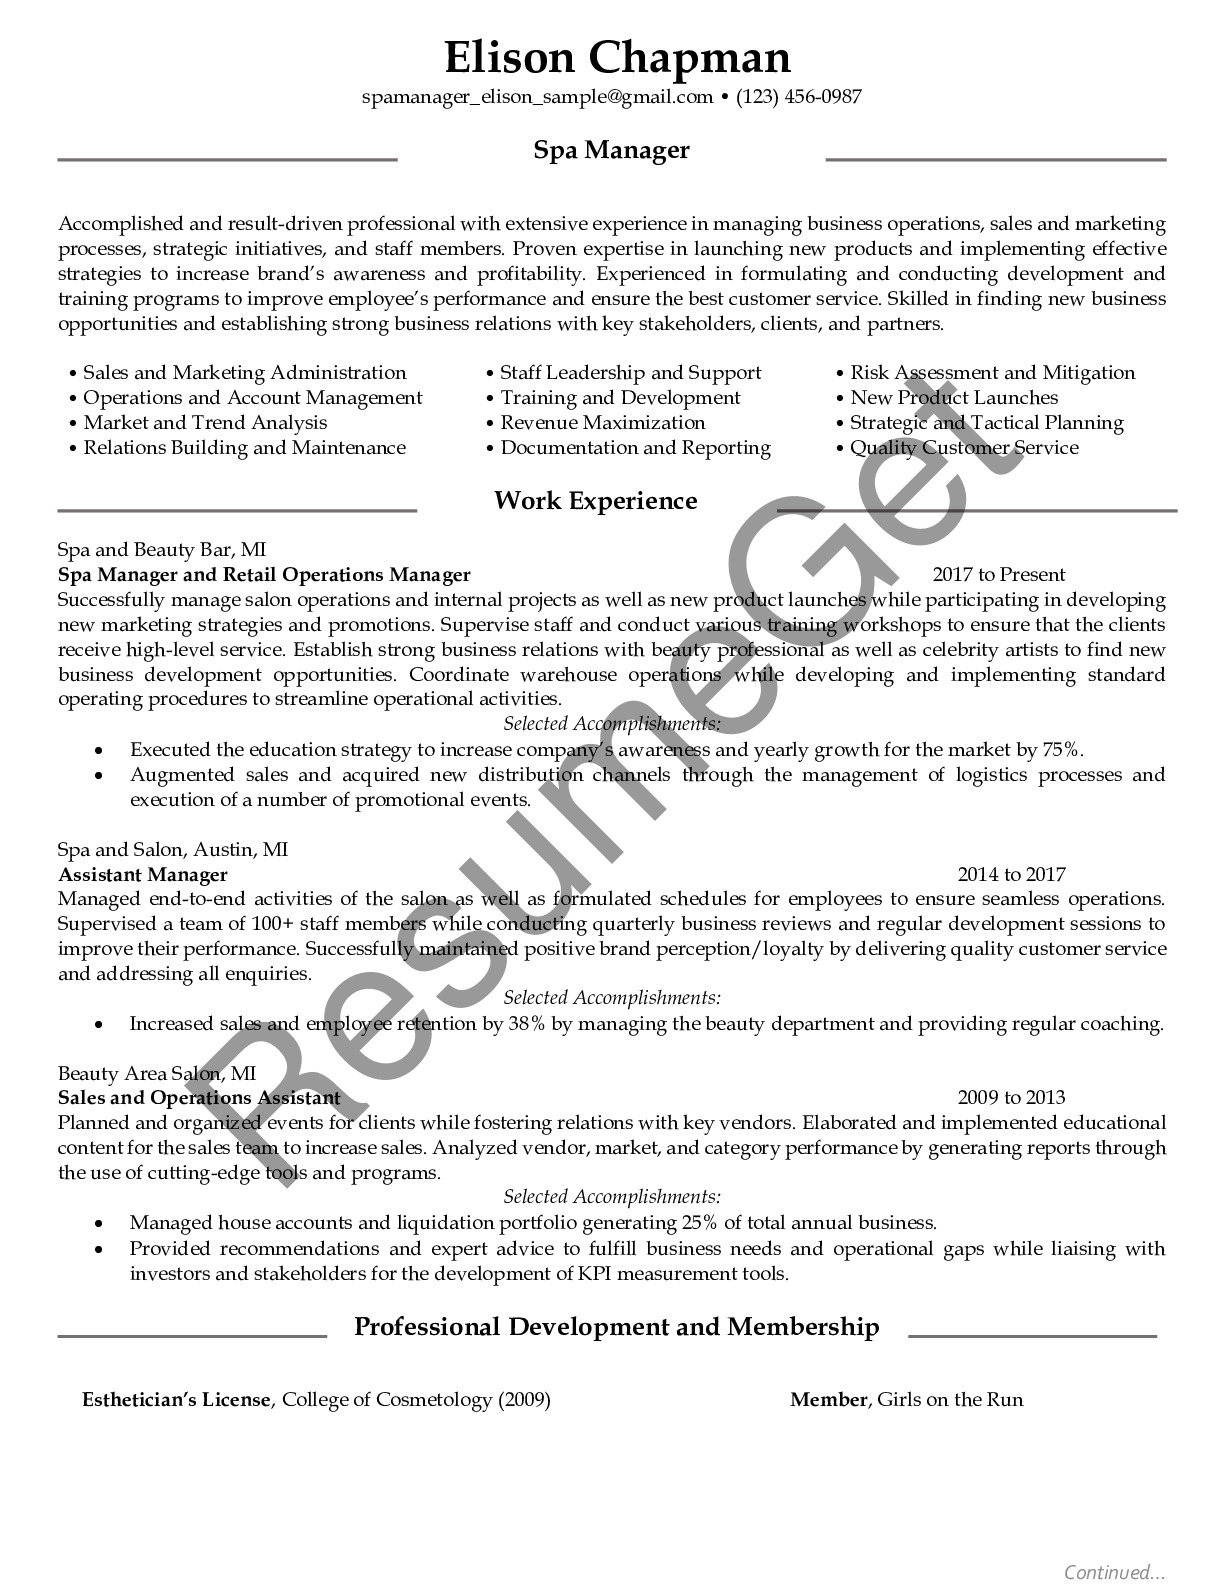 spa manager resume examples resumeget job description picking and packing sample free Resume Spa Manager Job Description Resume